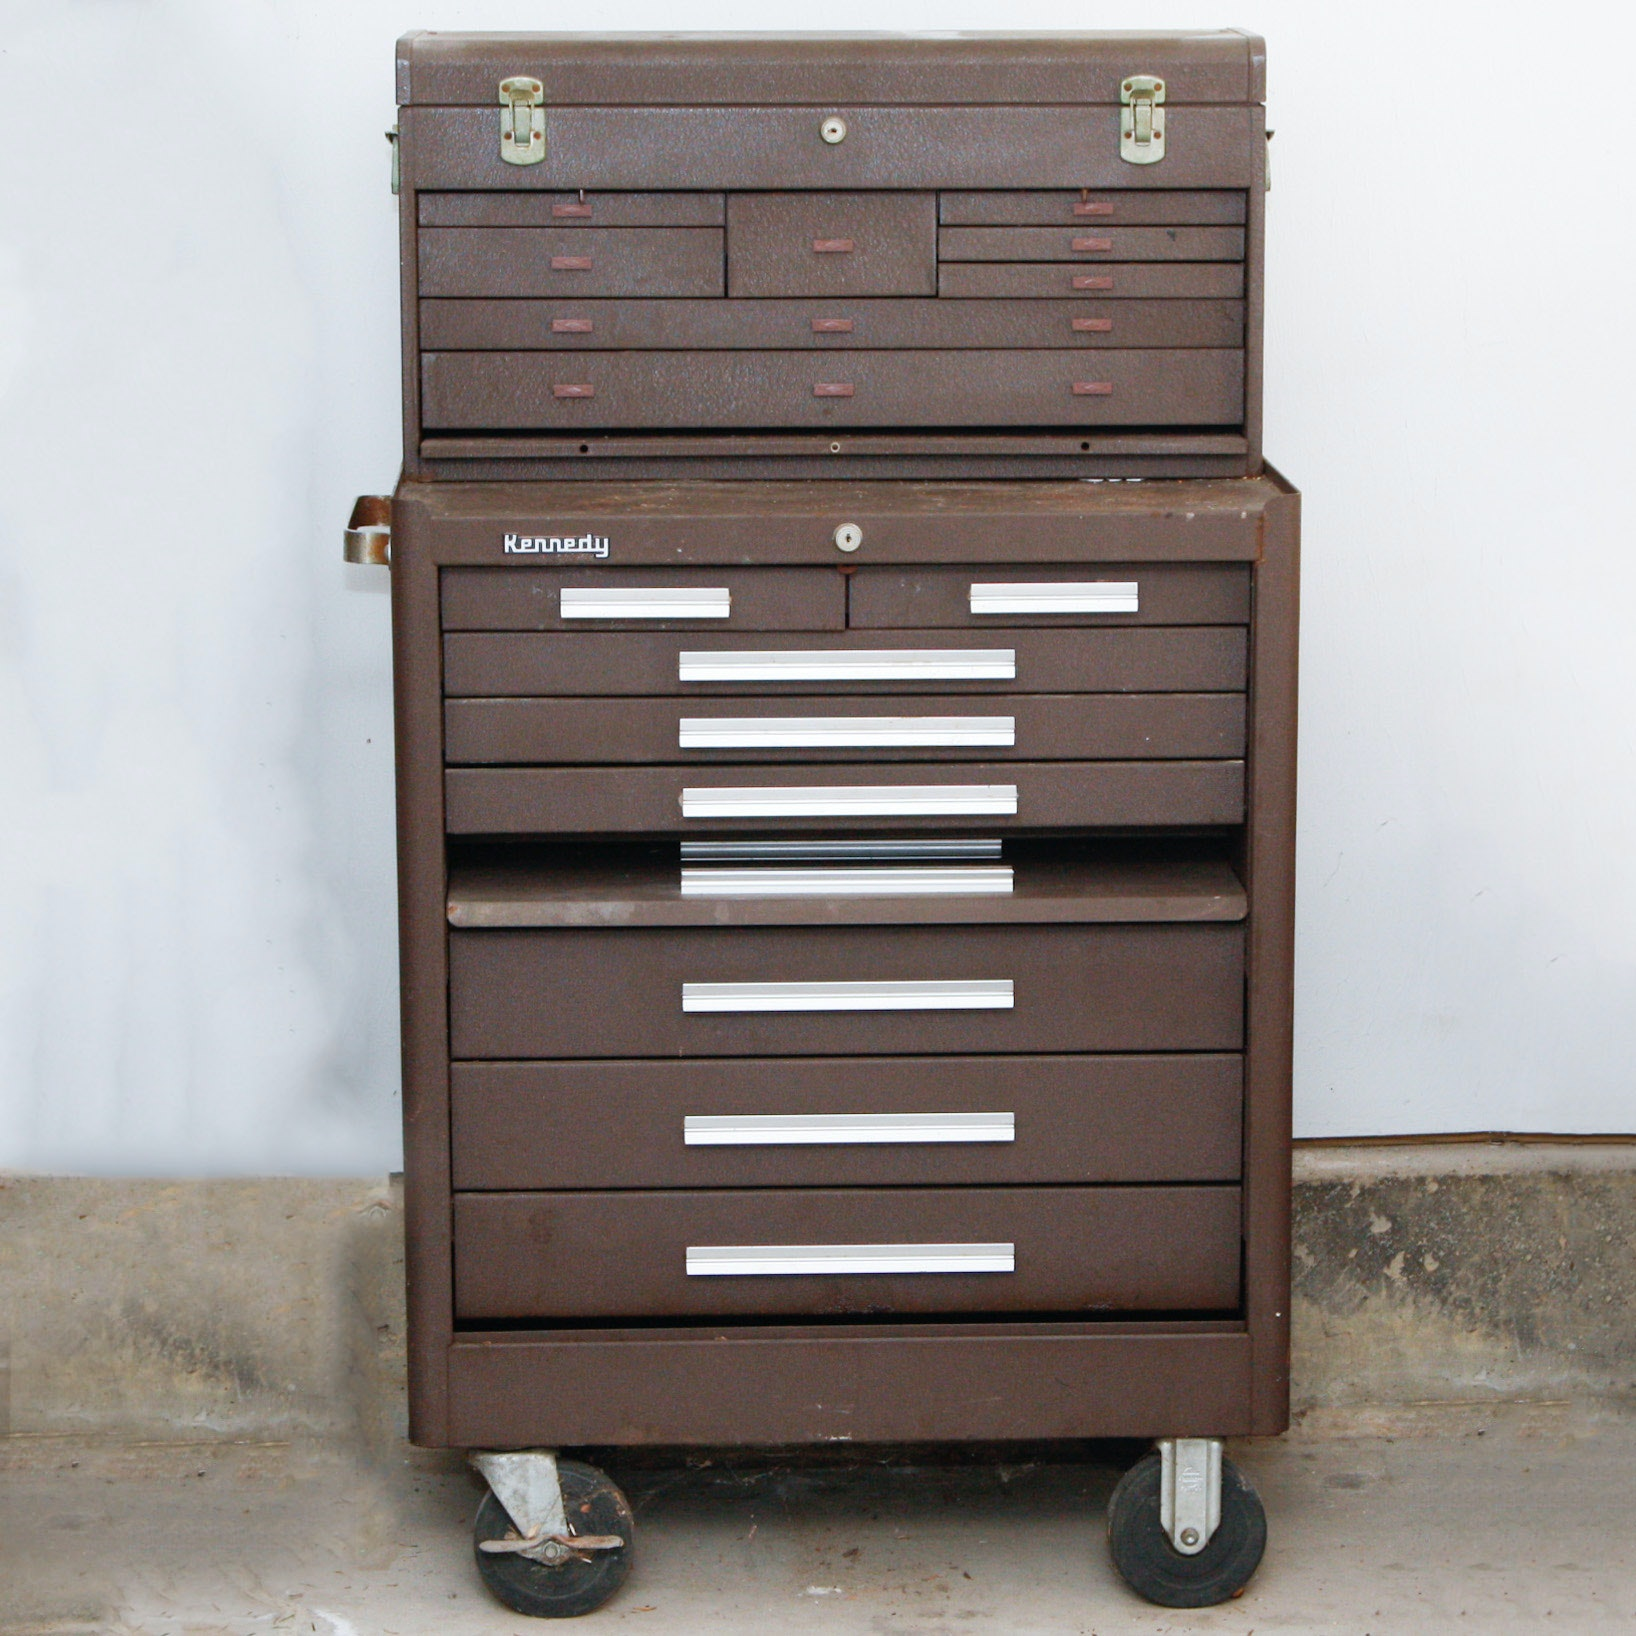 kennedy rolling tool box with assorted tools